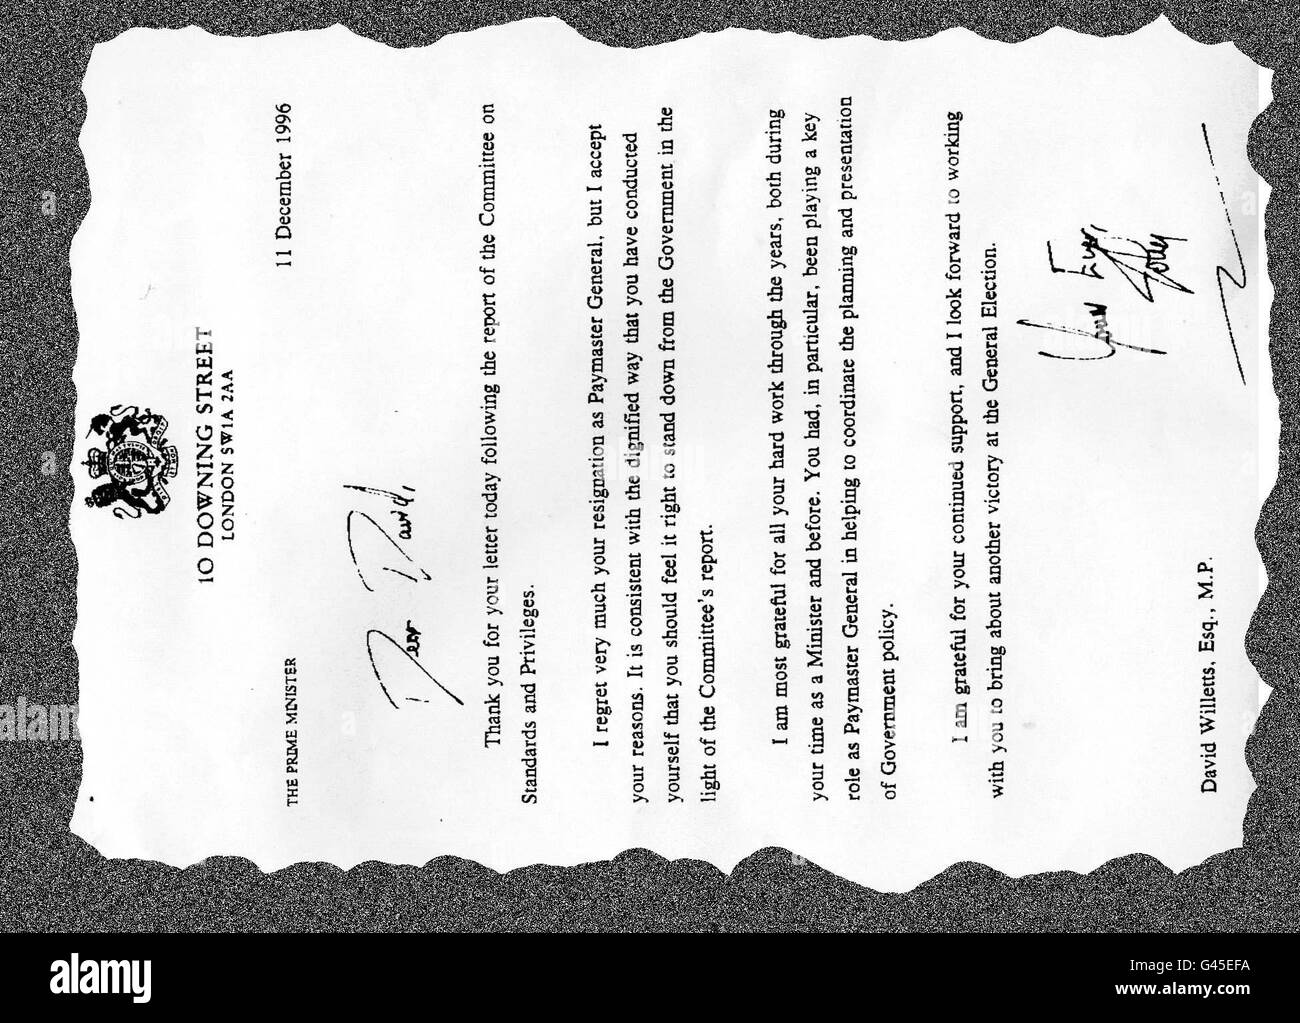 The letter from Prime Minister John Major to David Willetts accepting his resignation as Paymaster General. Willetts quit office within minutes of publication of a report which accused him of dissembling - a word which can mean concealing or being insincere - before a Commons committee. Stock Photo